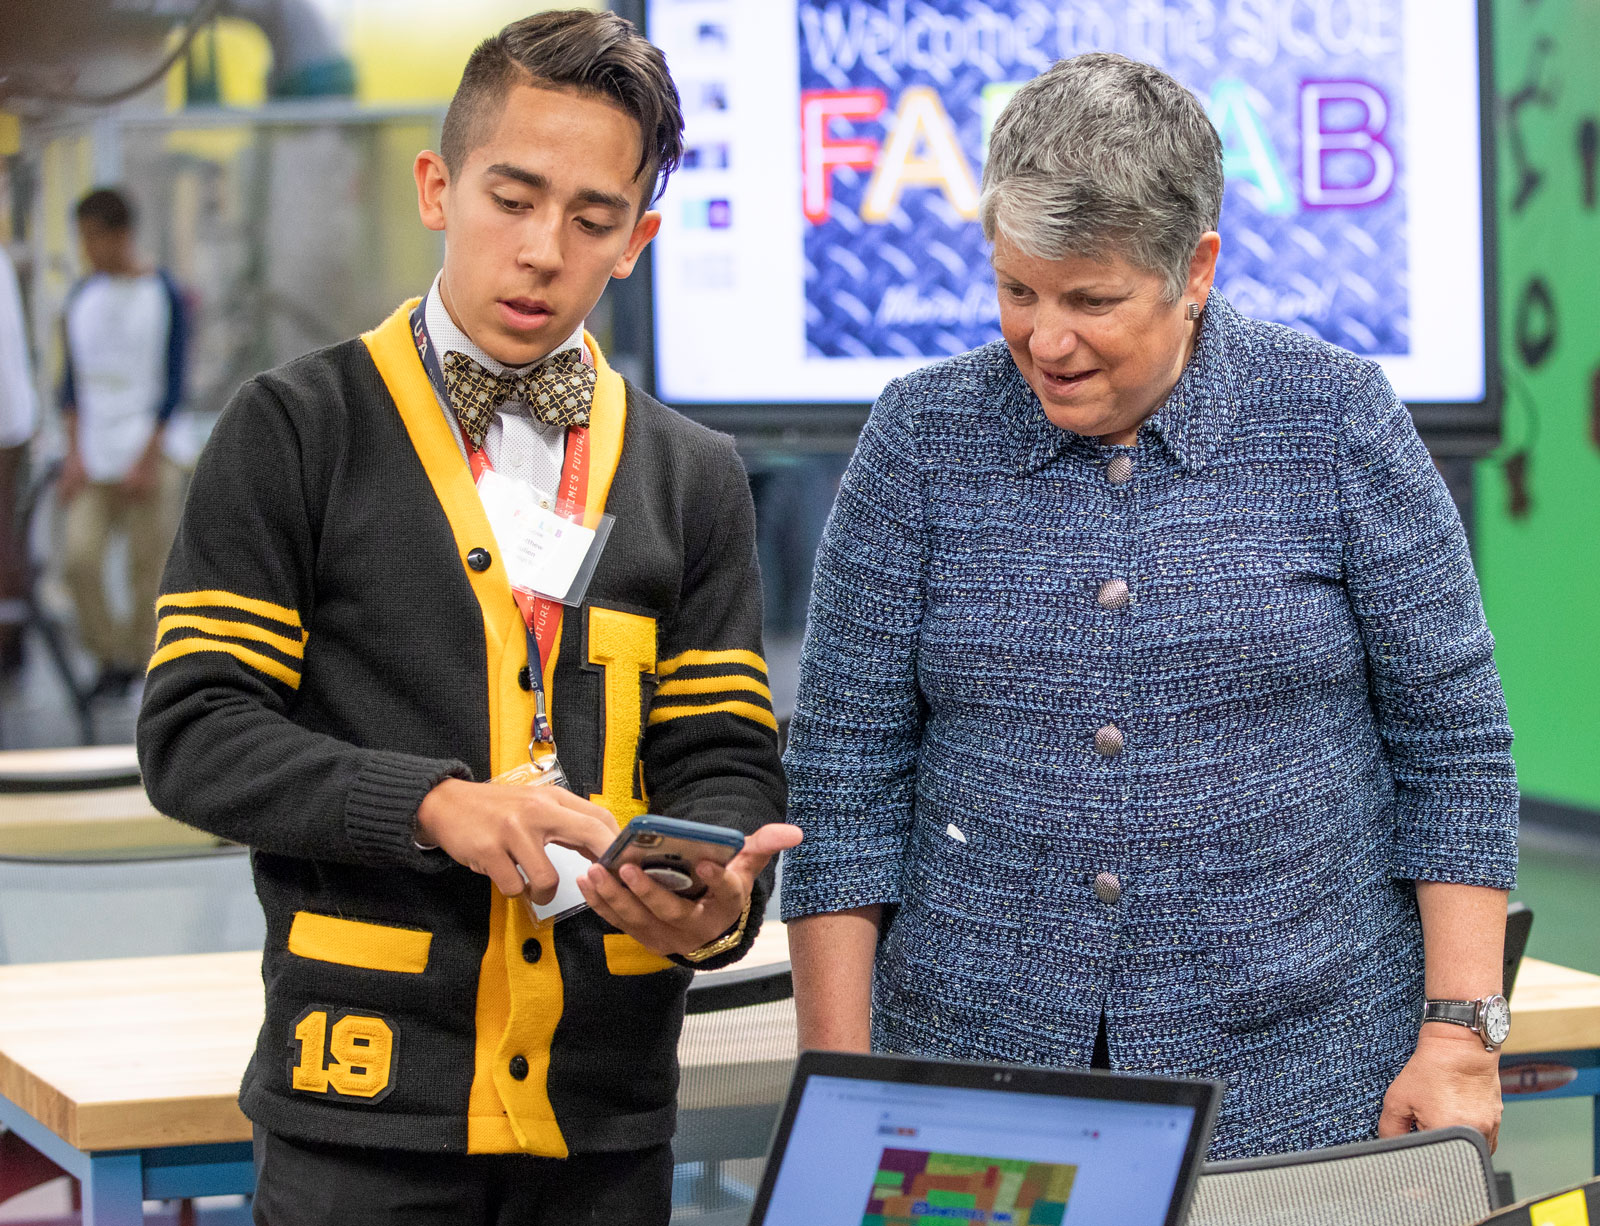 UC President Janet Napolitano stands with a teenager who shows her something on a phone